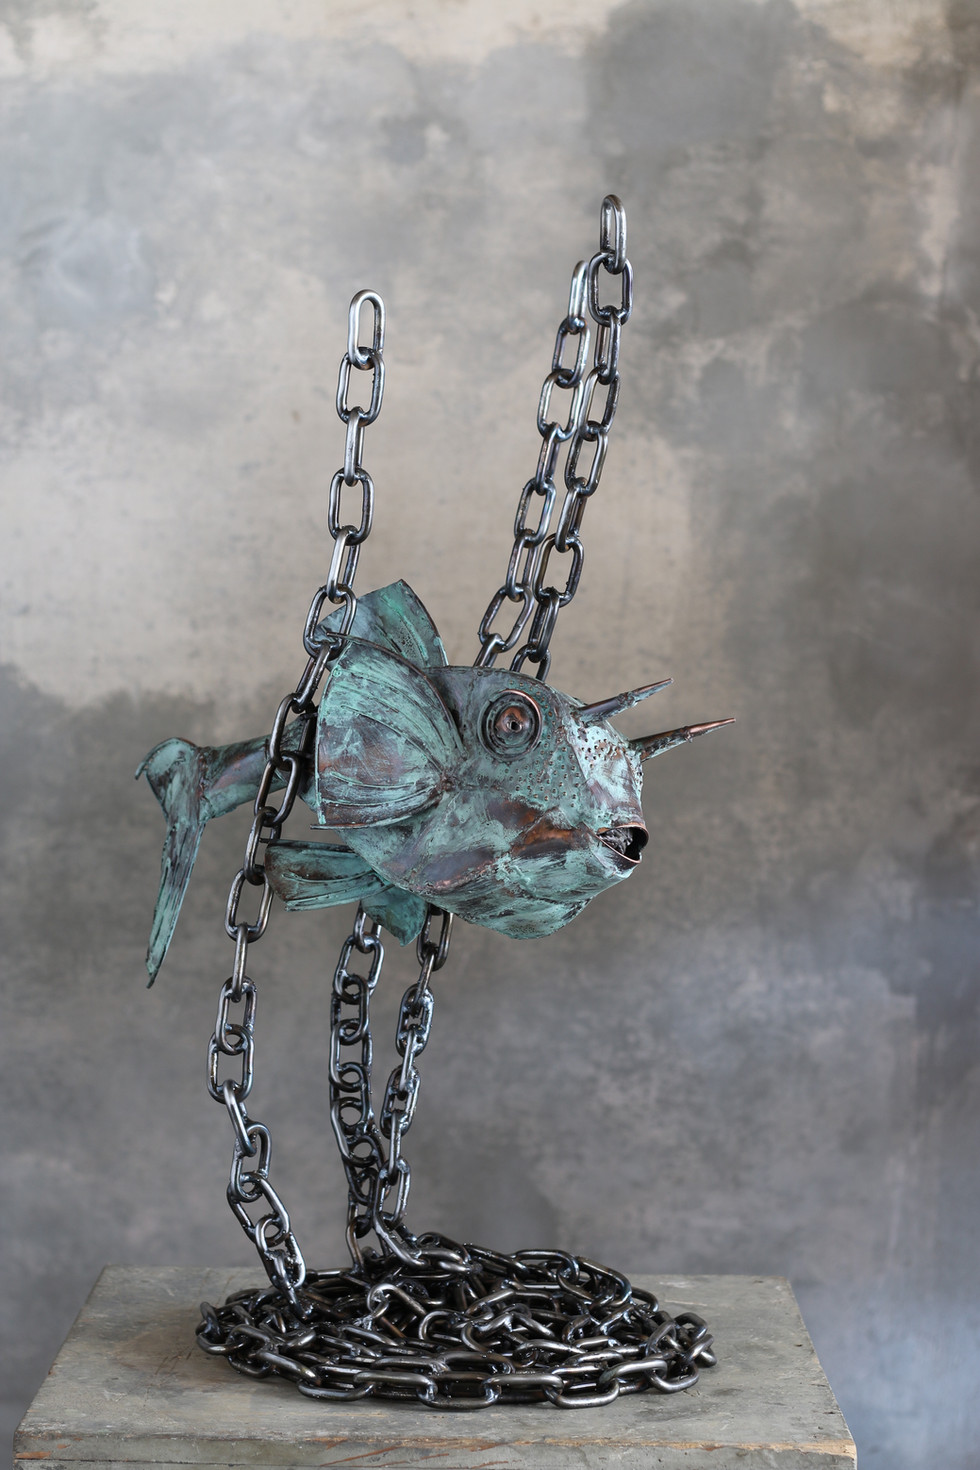 Submarine-cowfish-copper green patina and iron-h 85